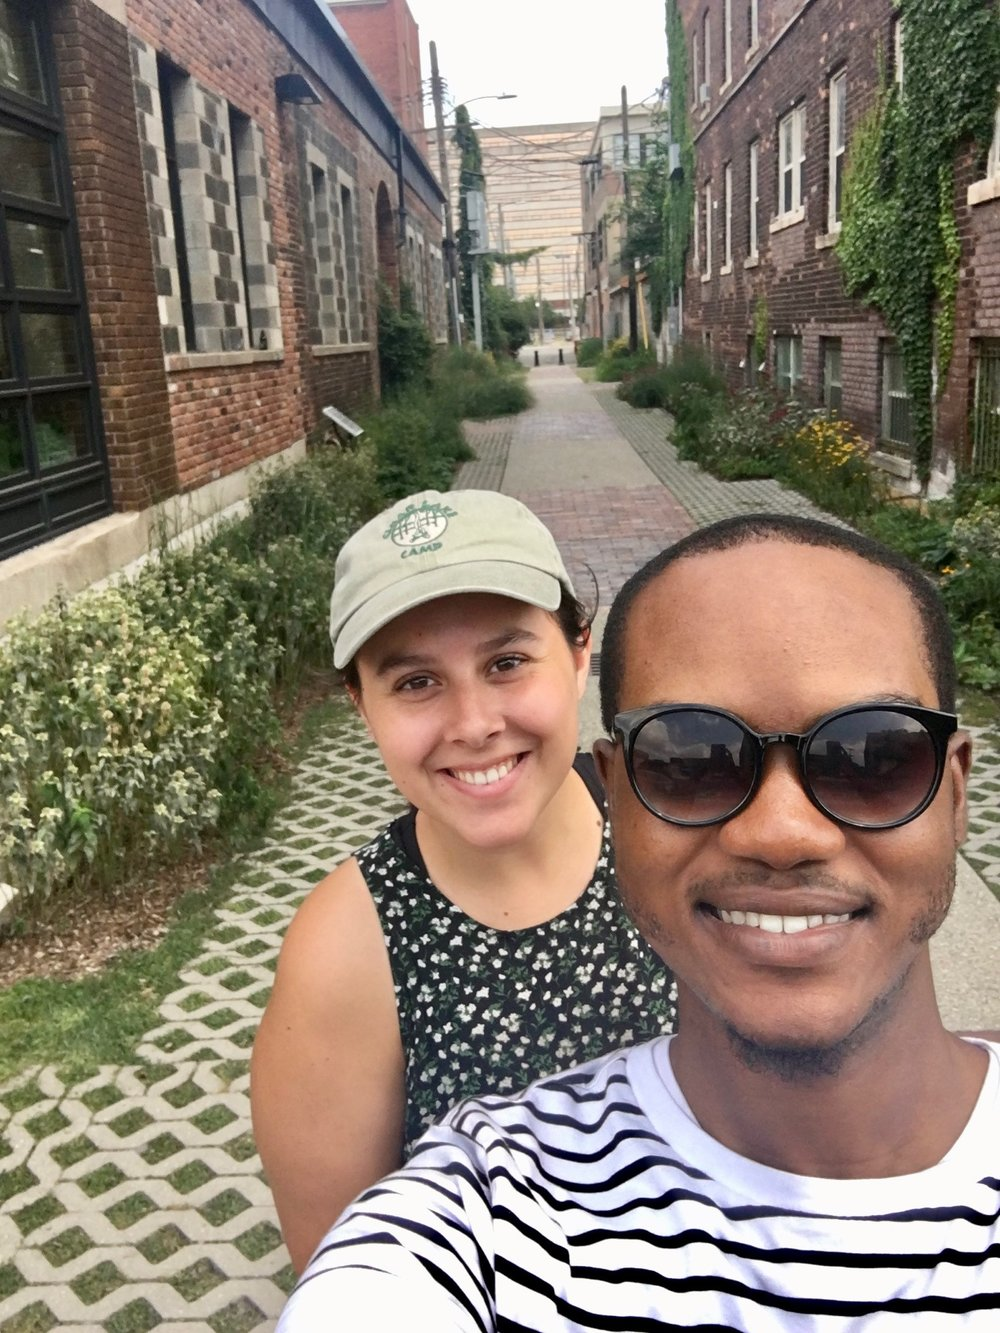 Ryan and I touring Detroit's Green Alley, July 27th, 2017